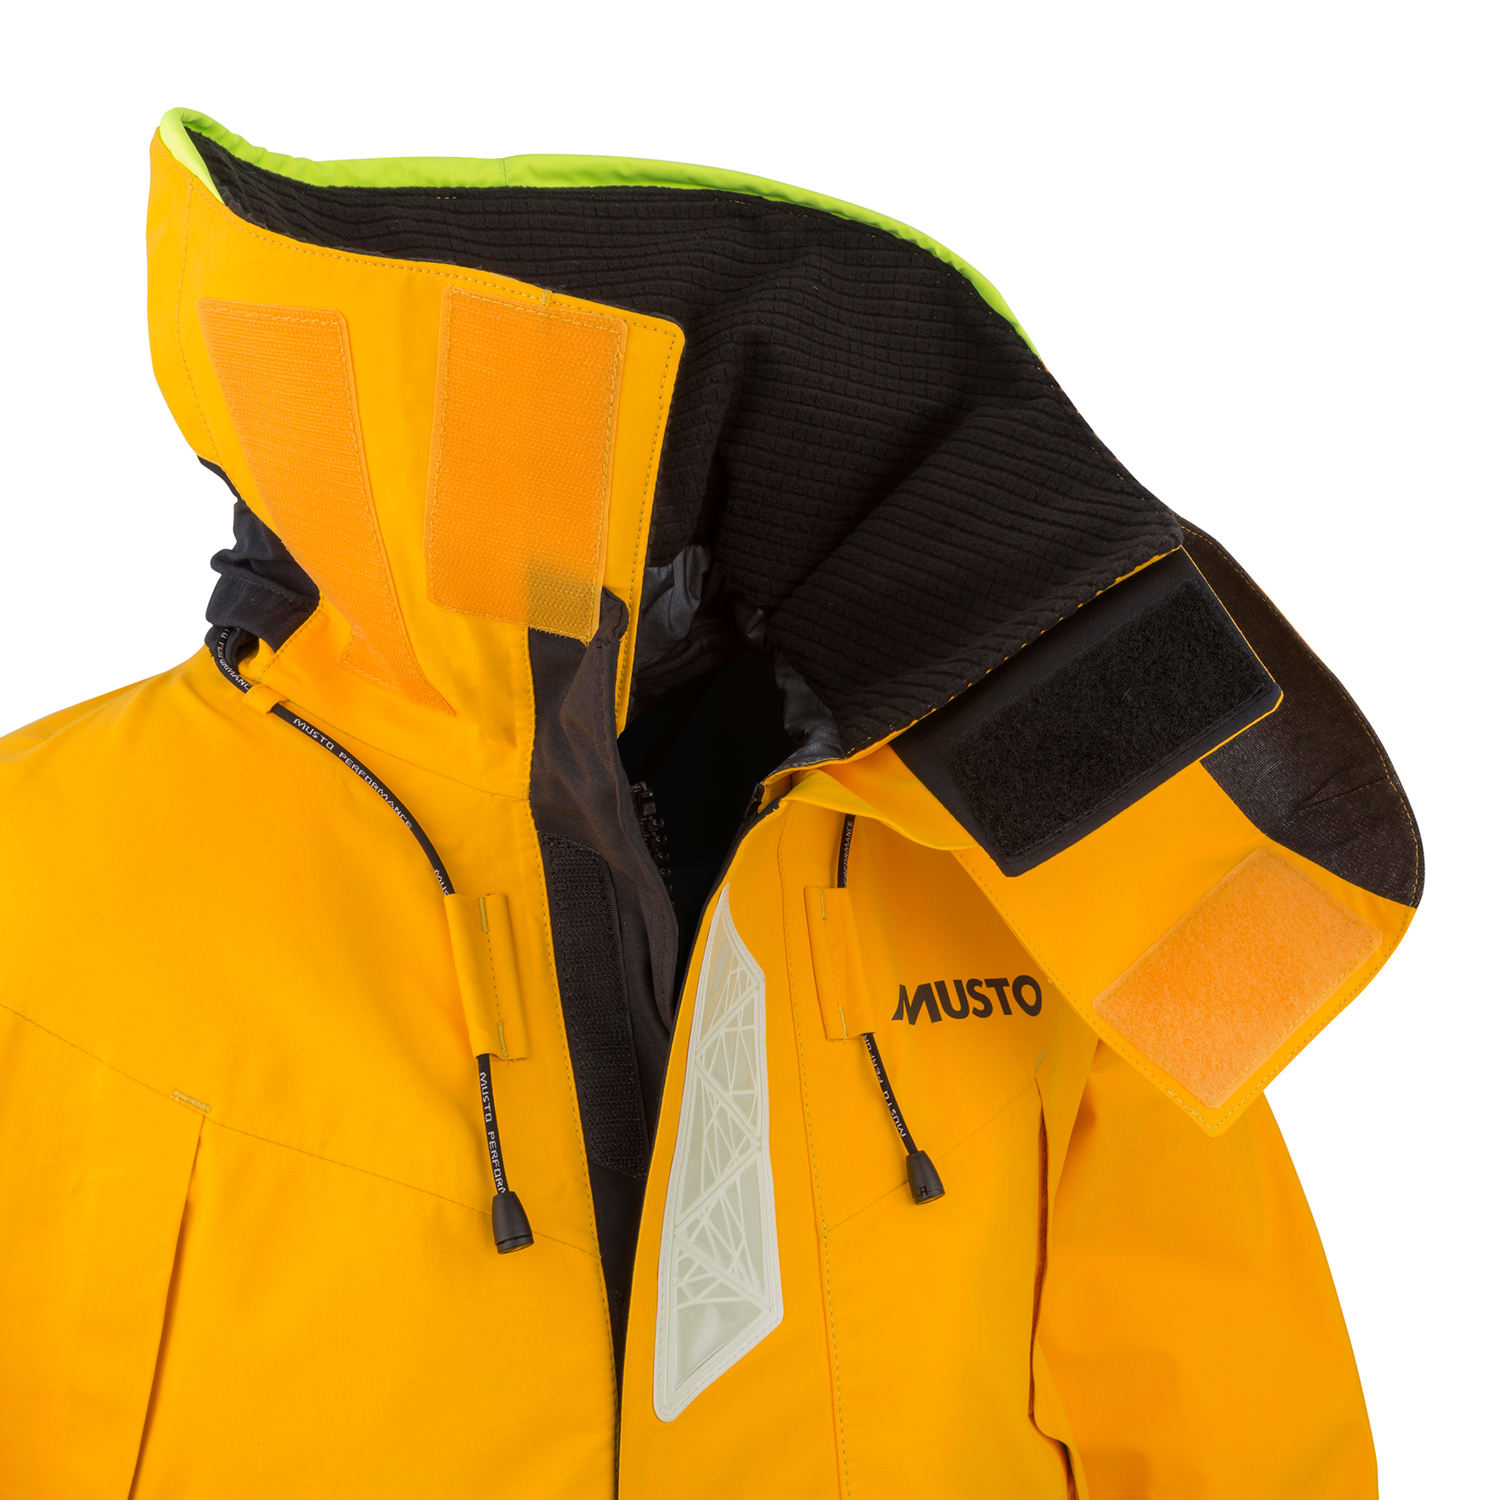 Musto Hpx Gore Tex Ocean Jacket 2018 Gold Black Coast